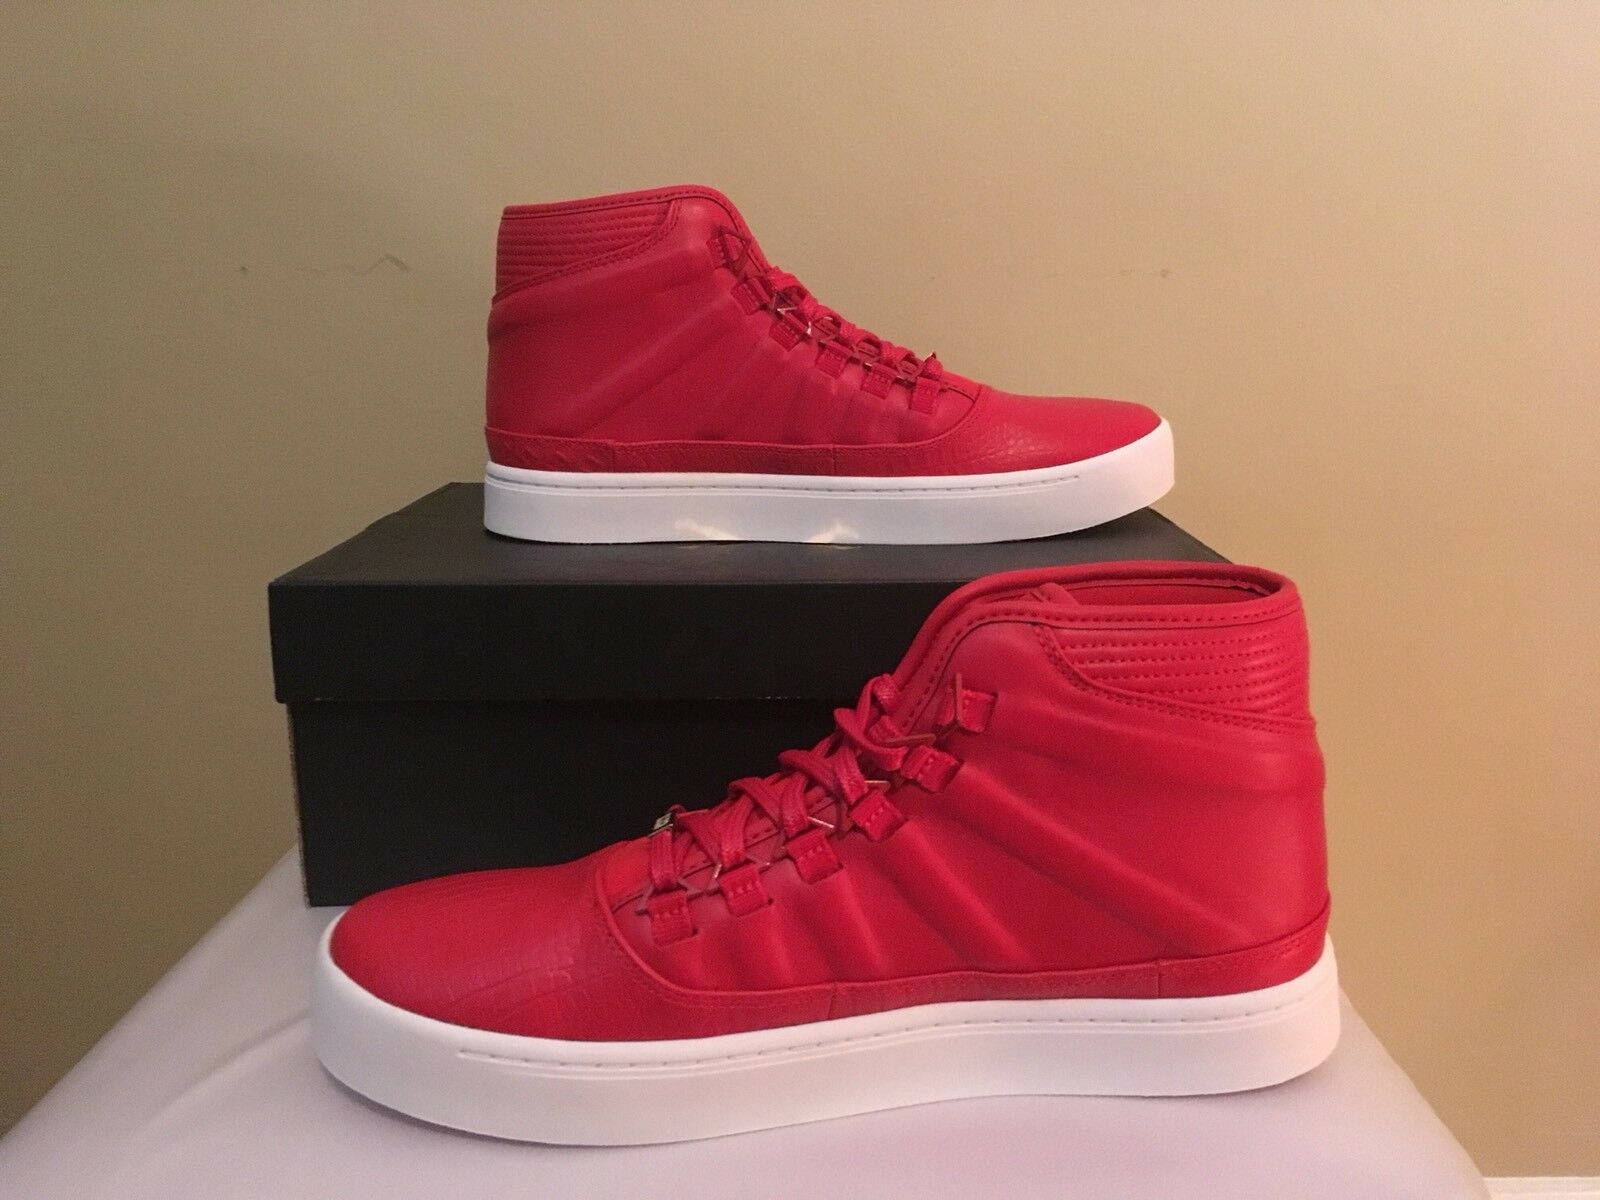 Air Jordan Westbrook 0 Sneaker Red Men size 10 Seasonal clearance sale